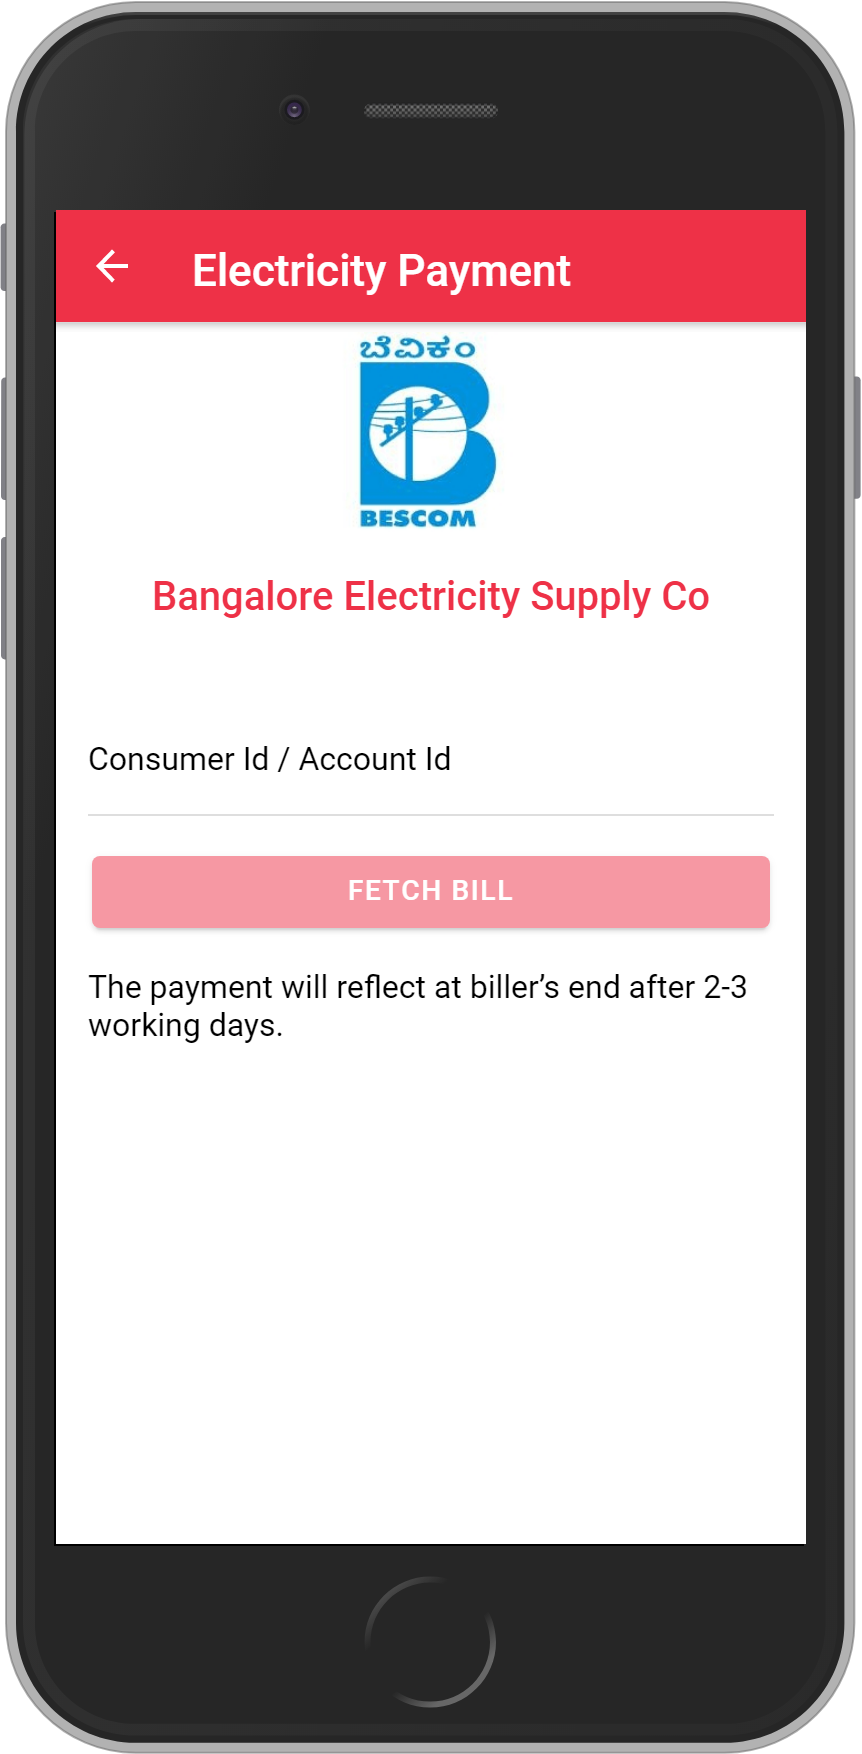 Get UNLIMITED <b>0.1%</b> CASHBACK on Bangalore Electricity Supply Company Bill Payment.